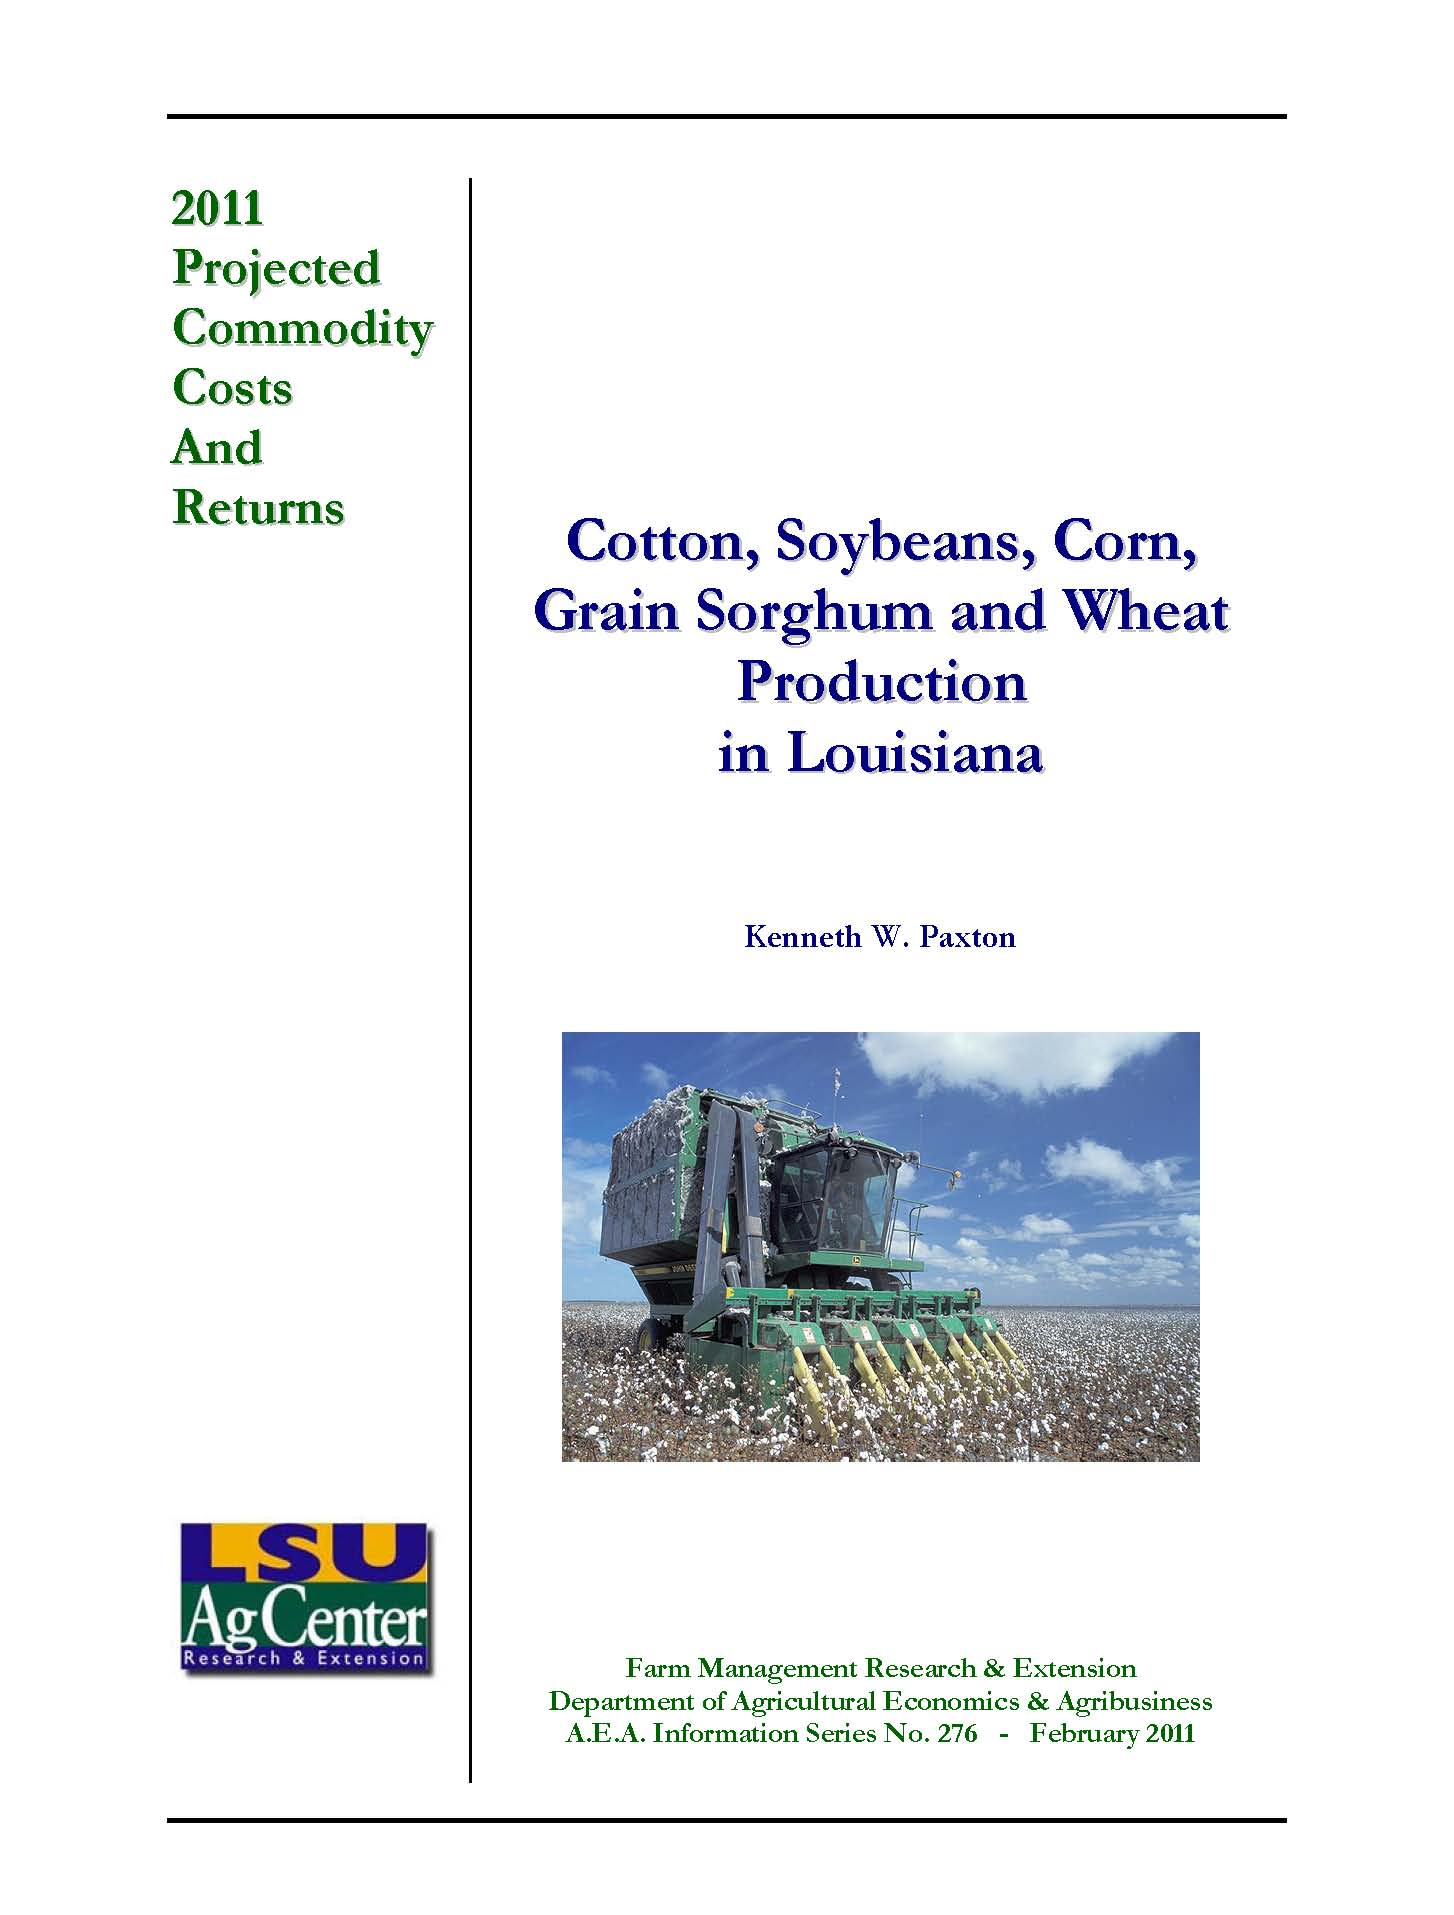 Projected Costs and Returns for Cotton Soybeans Corn Grain Sorghum and Wheat Louisiana 2011